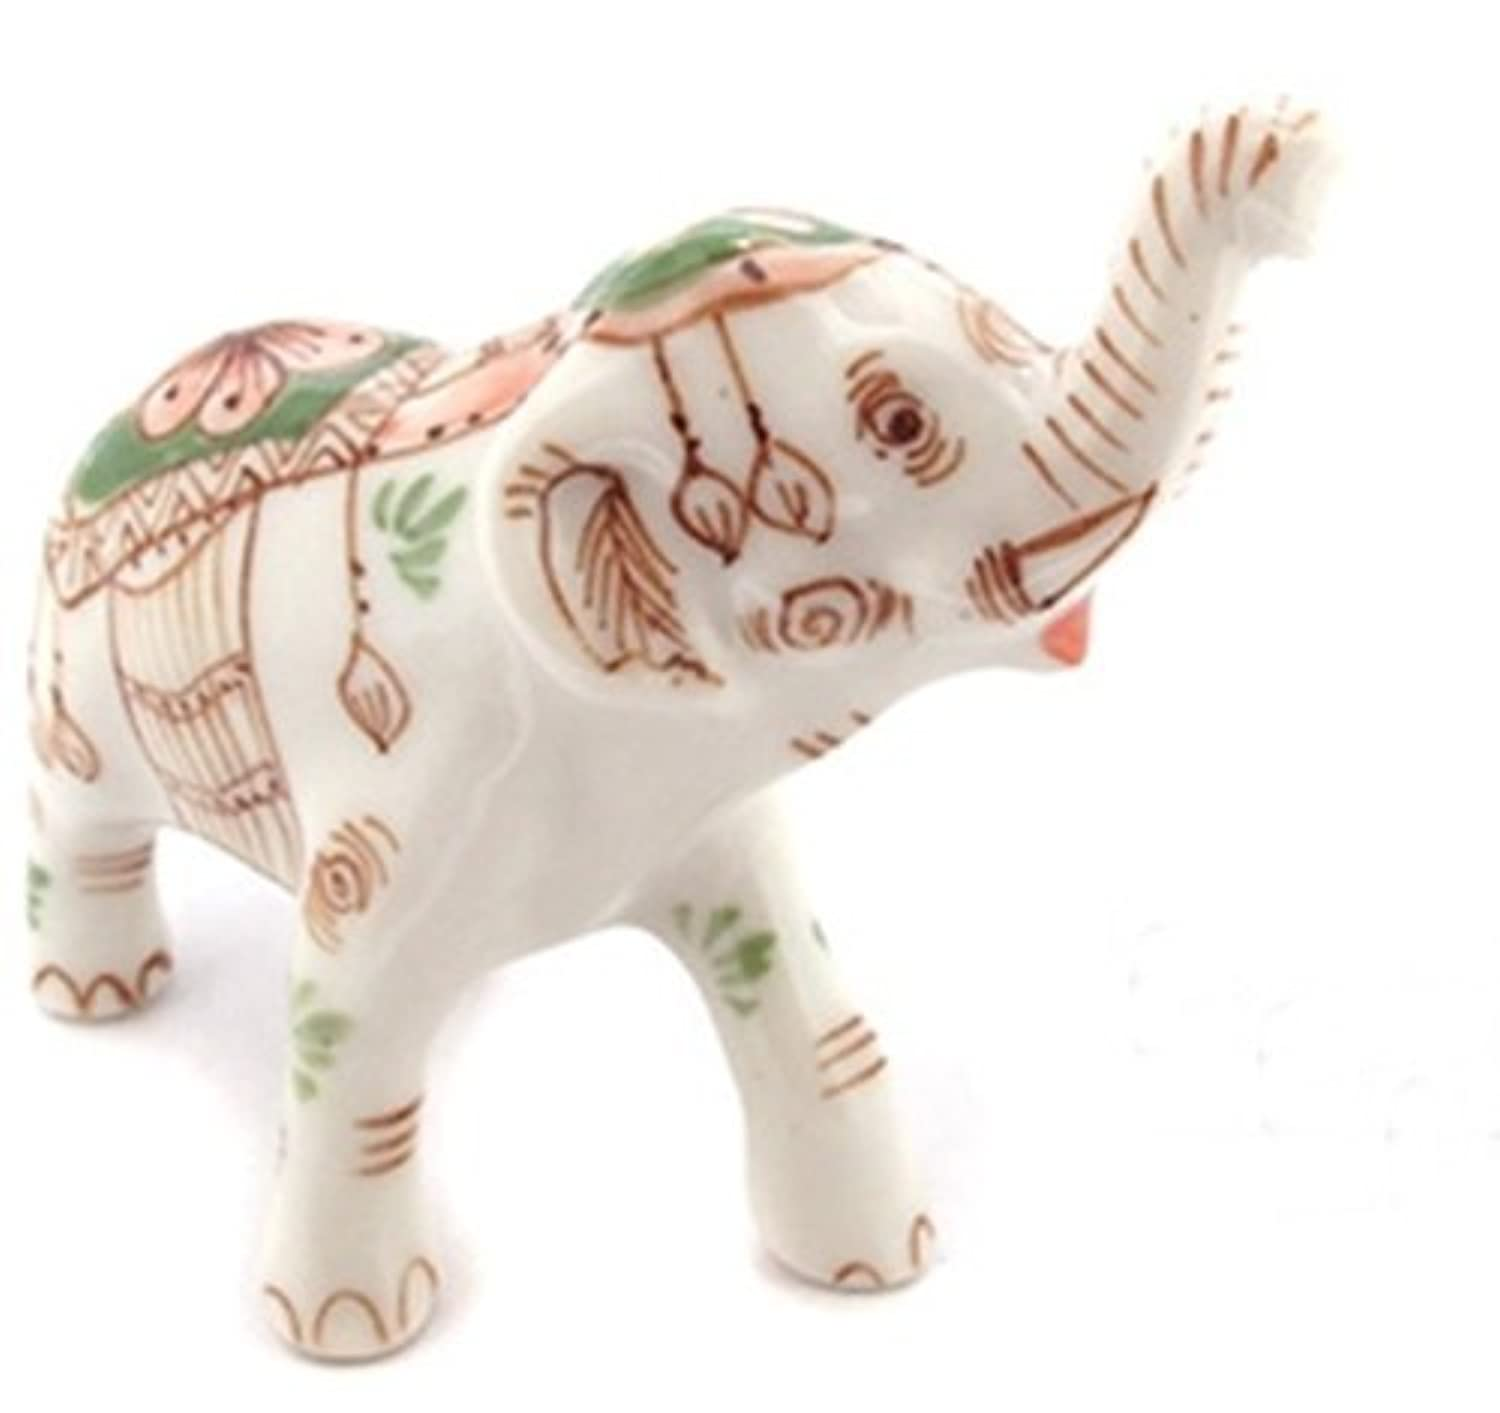 3 D Ceramic Toy Mom Elephant Trunk Up Dollhouse Miniatures Free Ship by ChangThai Design [並行輸入品]